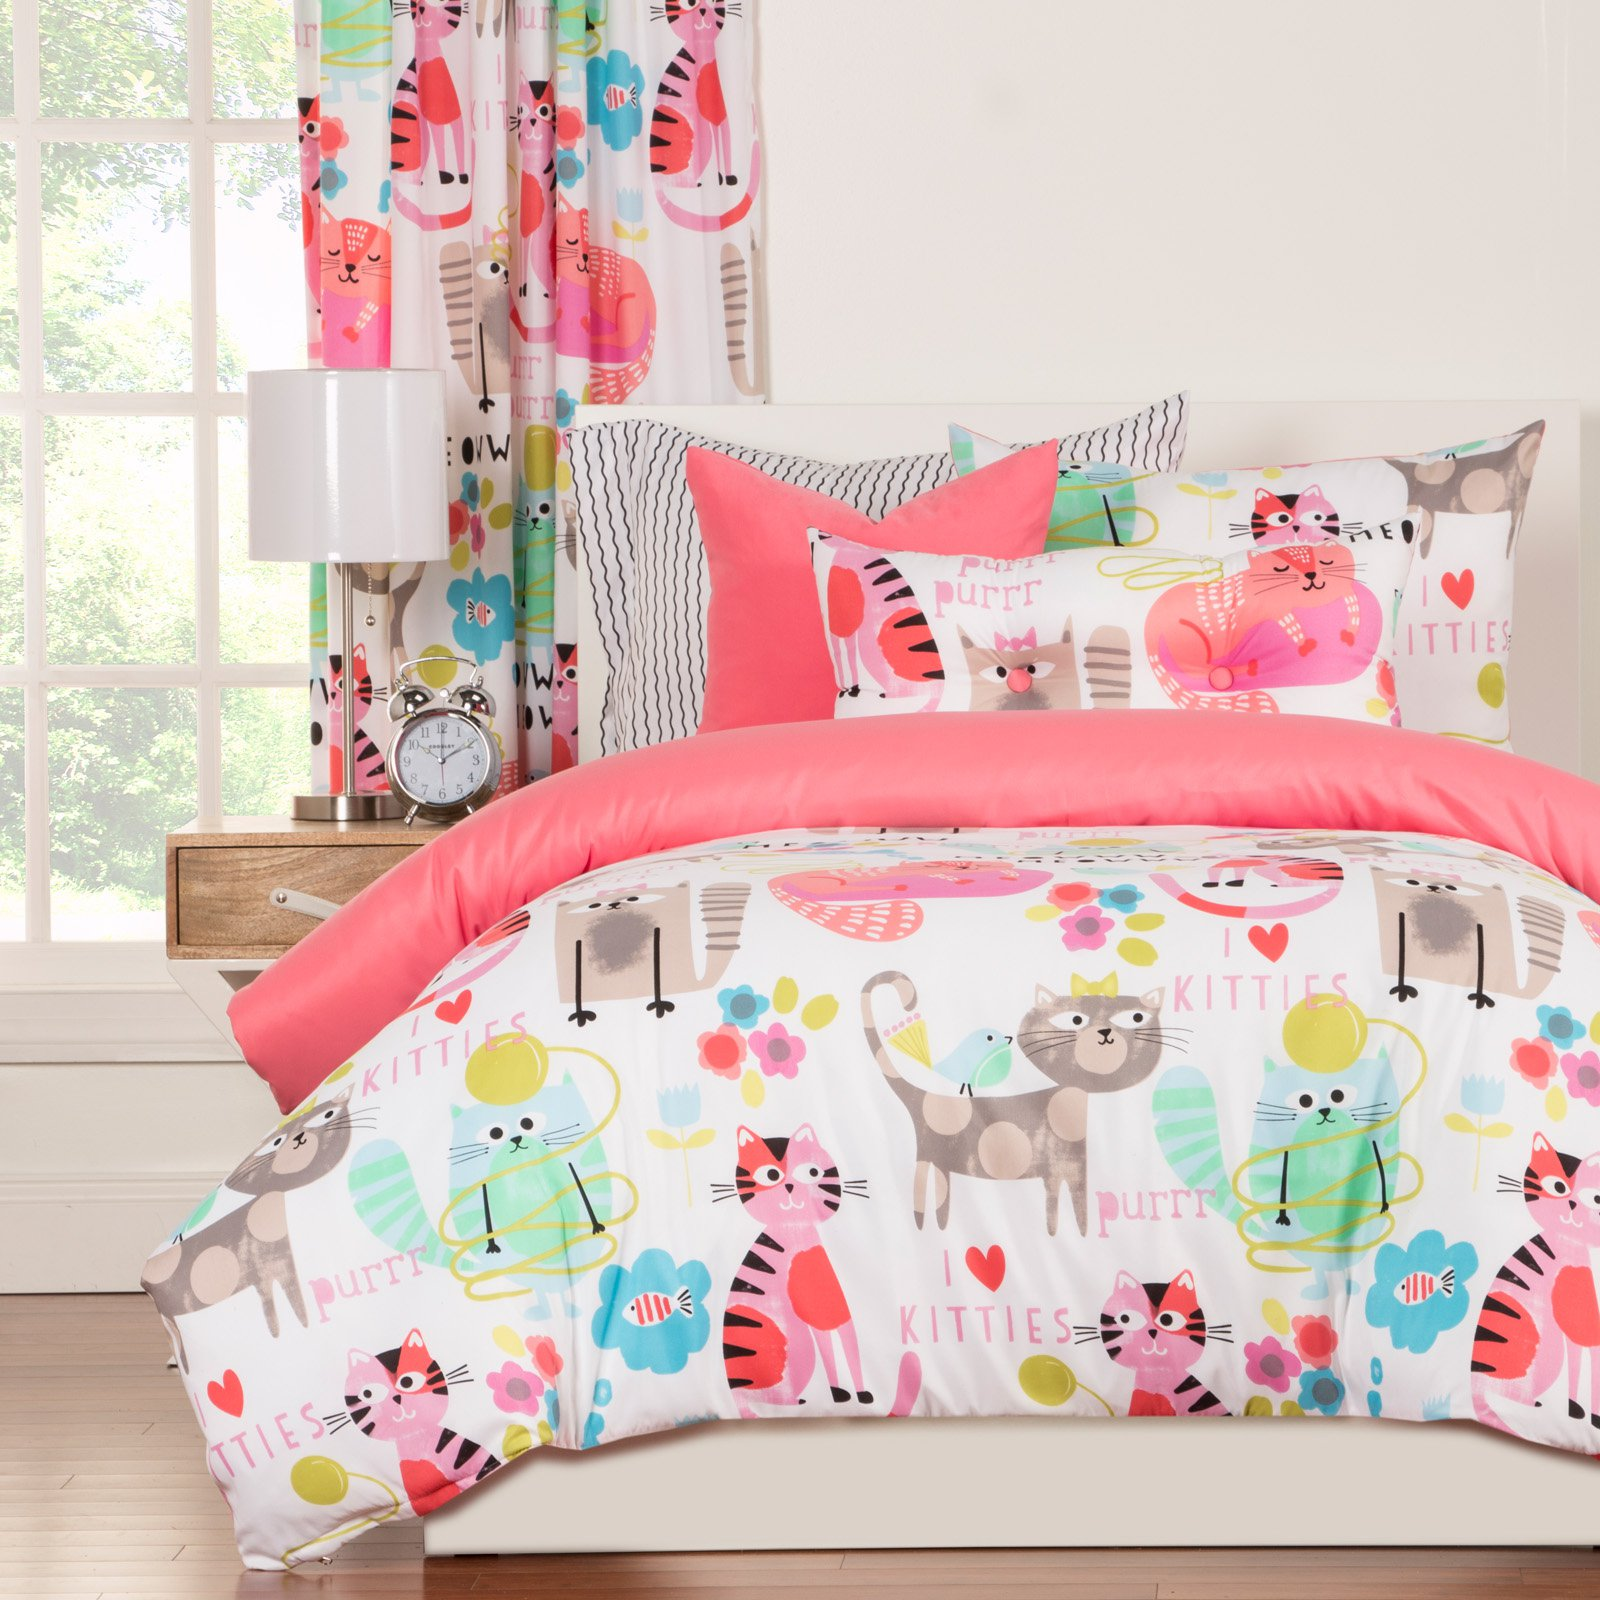 Purrty Cat Duvet Set by Crayola